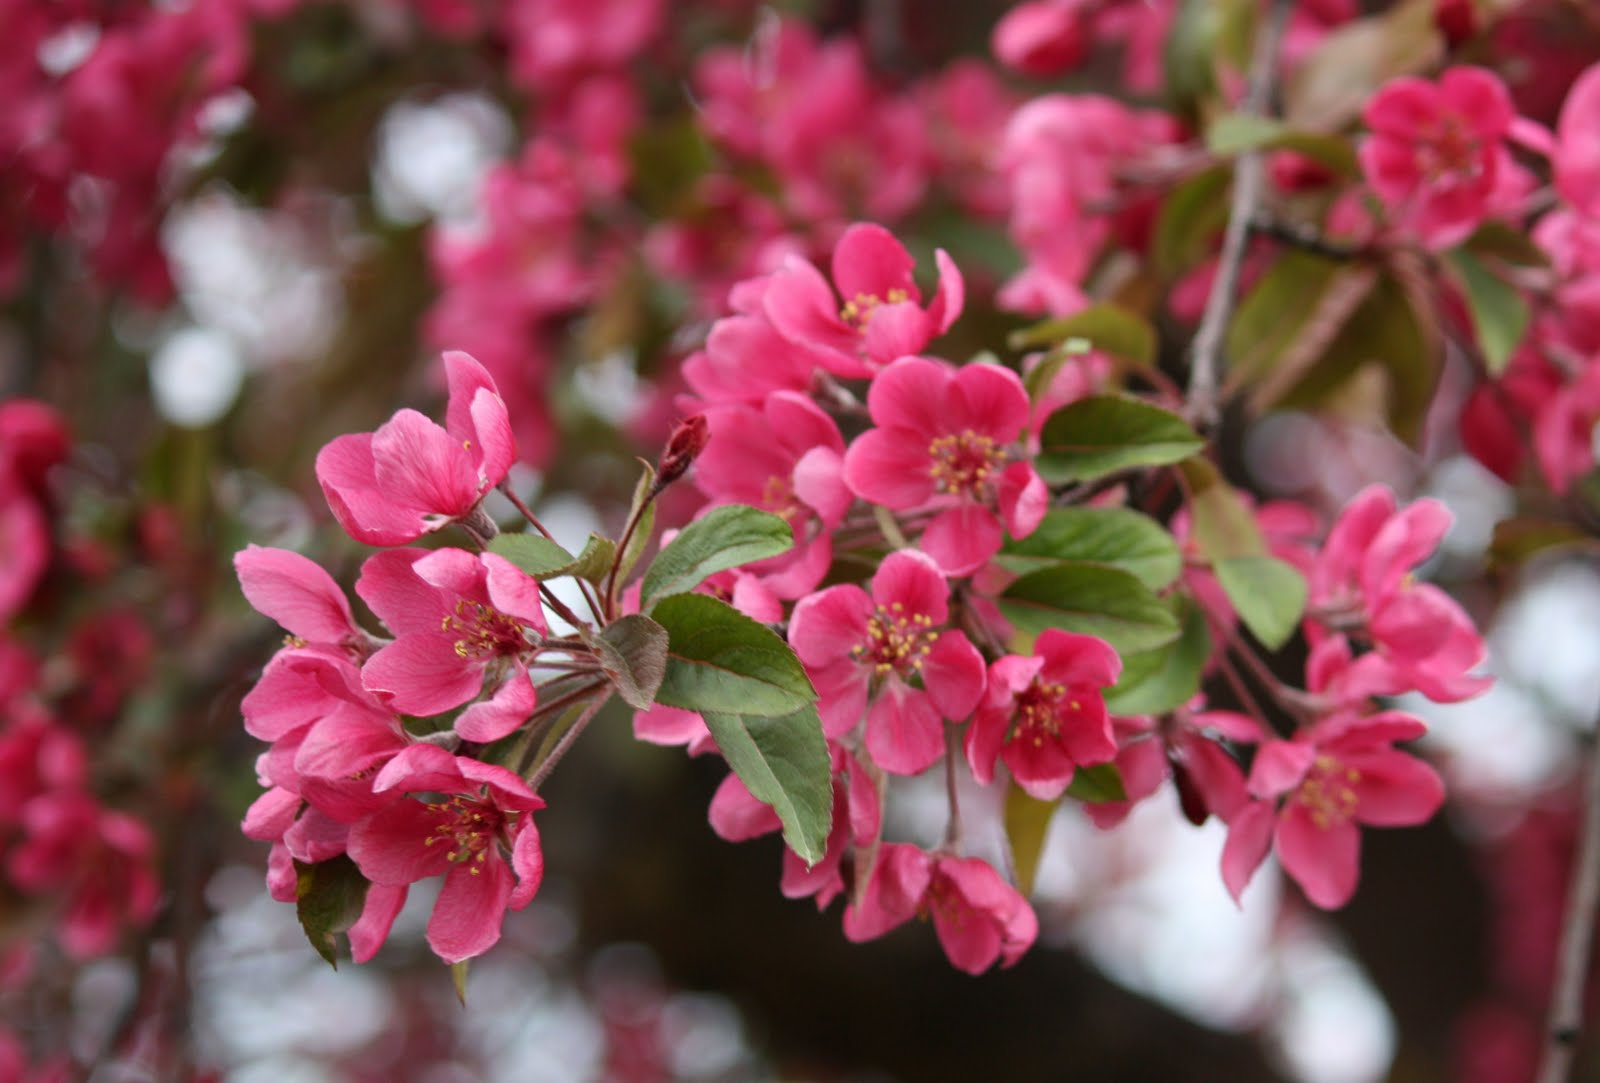 boise daily photo garden shot crab apple tree blossoms. Black Bedroom Furniture Sets. Home Design Ideas